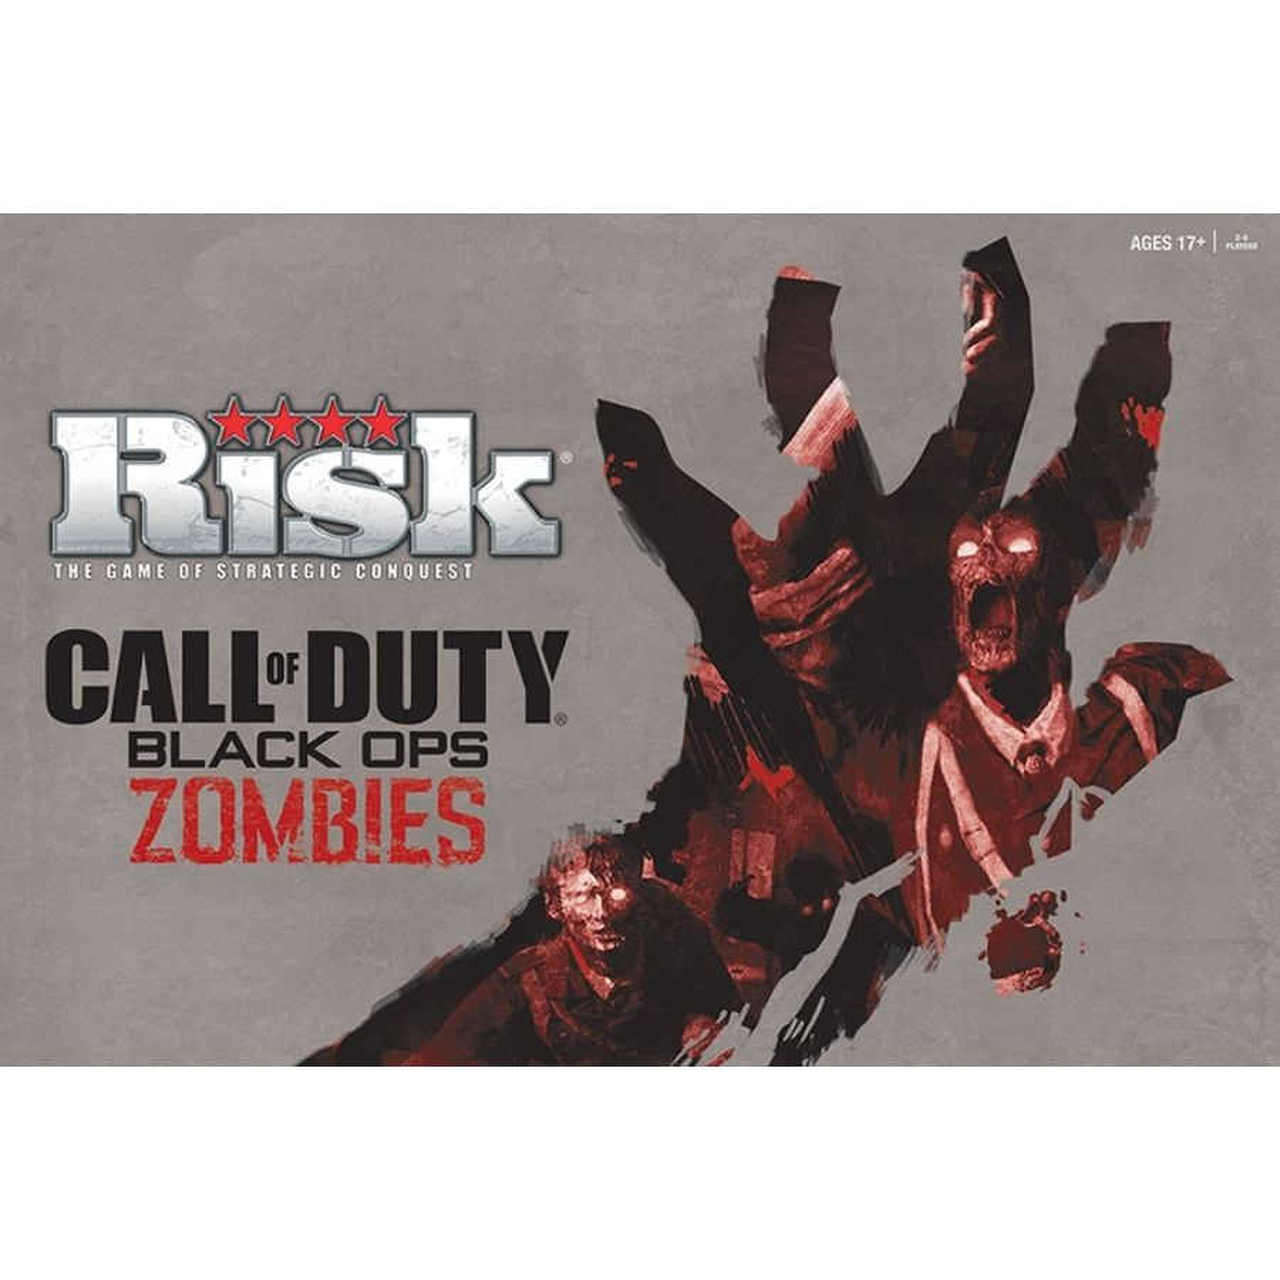 Risk Call of Duty Black Ops Zombies